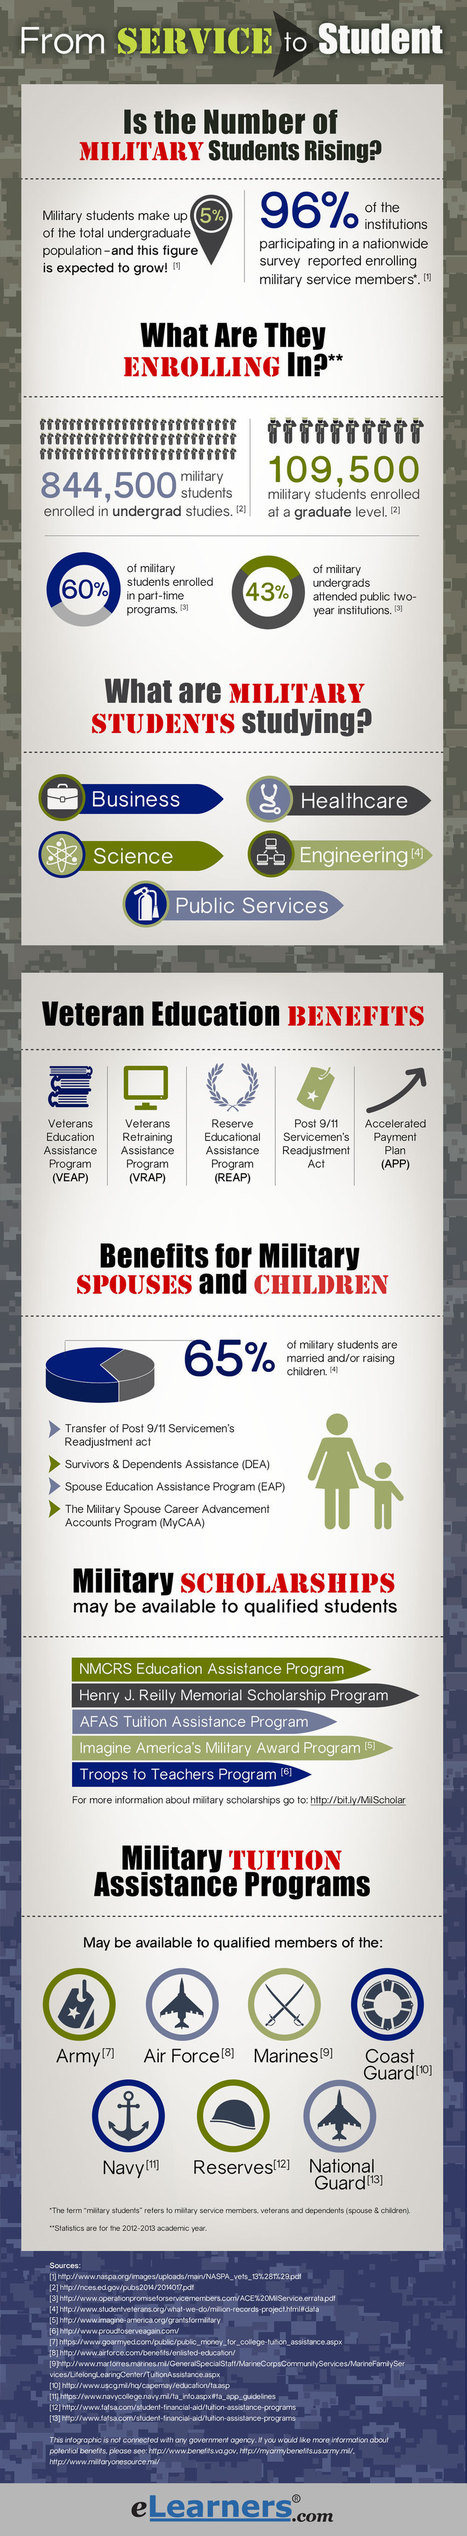 From Service to Student: An Overview of Military Students in Higher Education | Military Concerns | Scoop.it